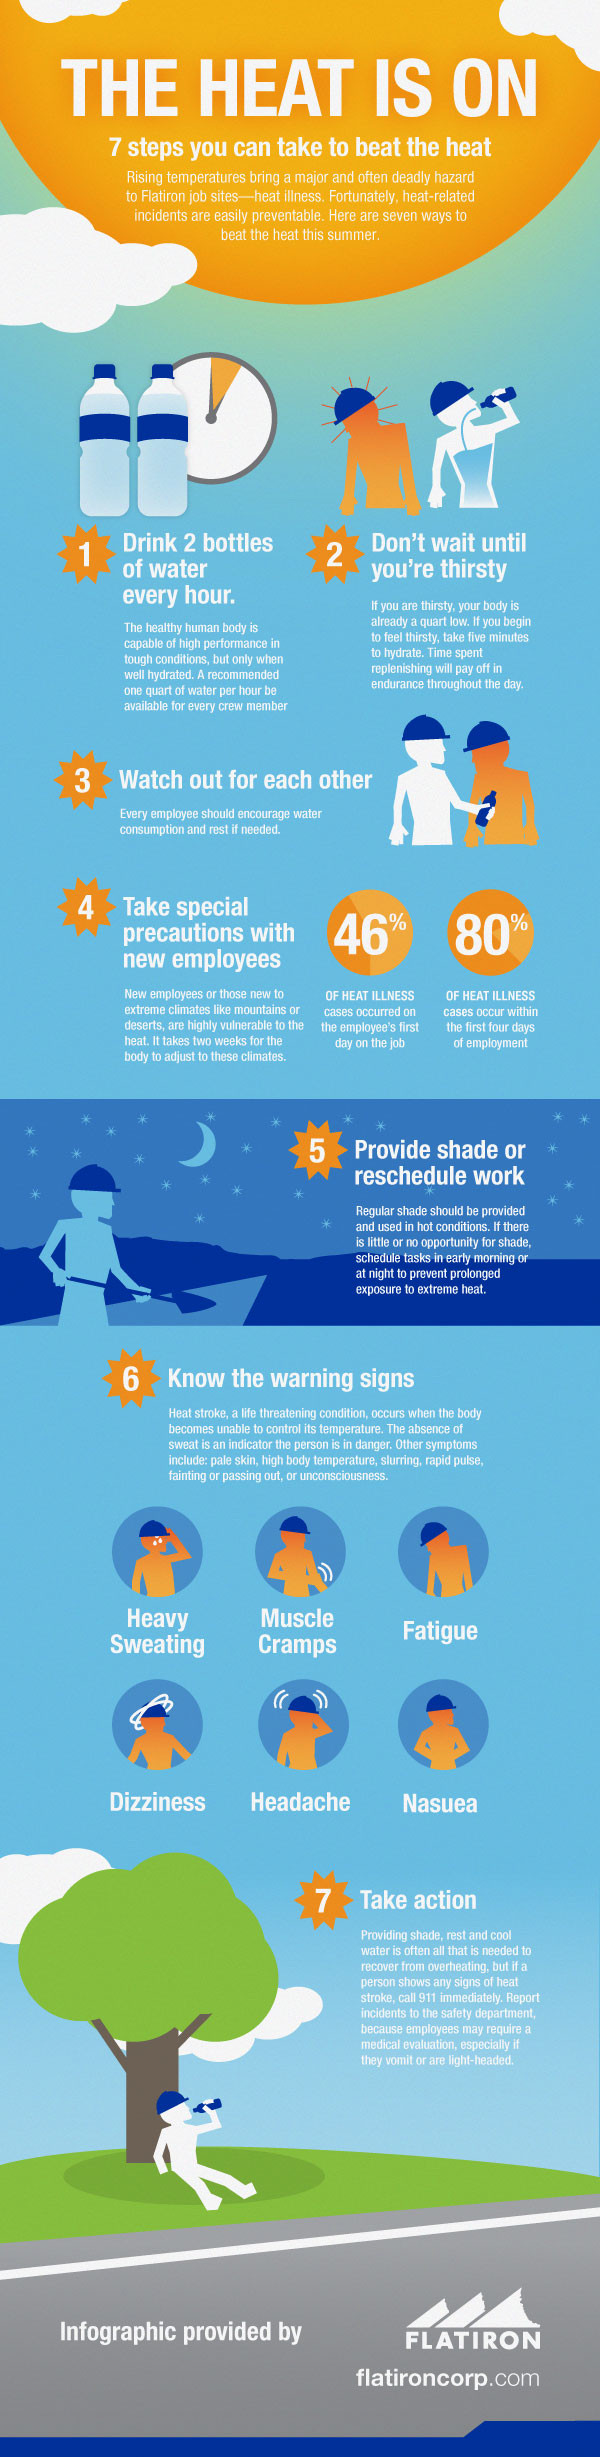 The Heat is On: 7 Steps Construction Workers Can Take to Beat the Heat